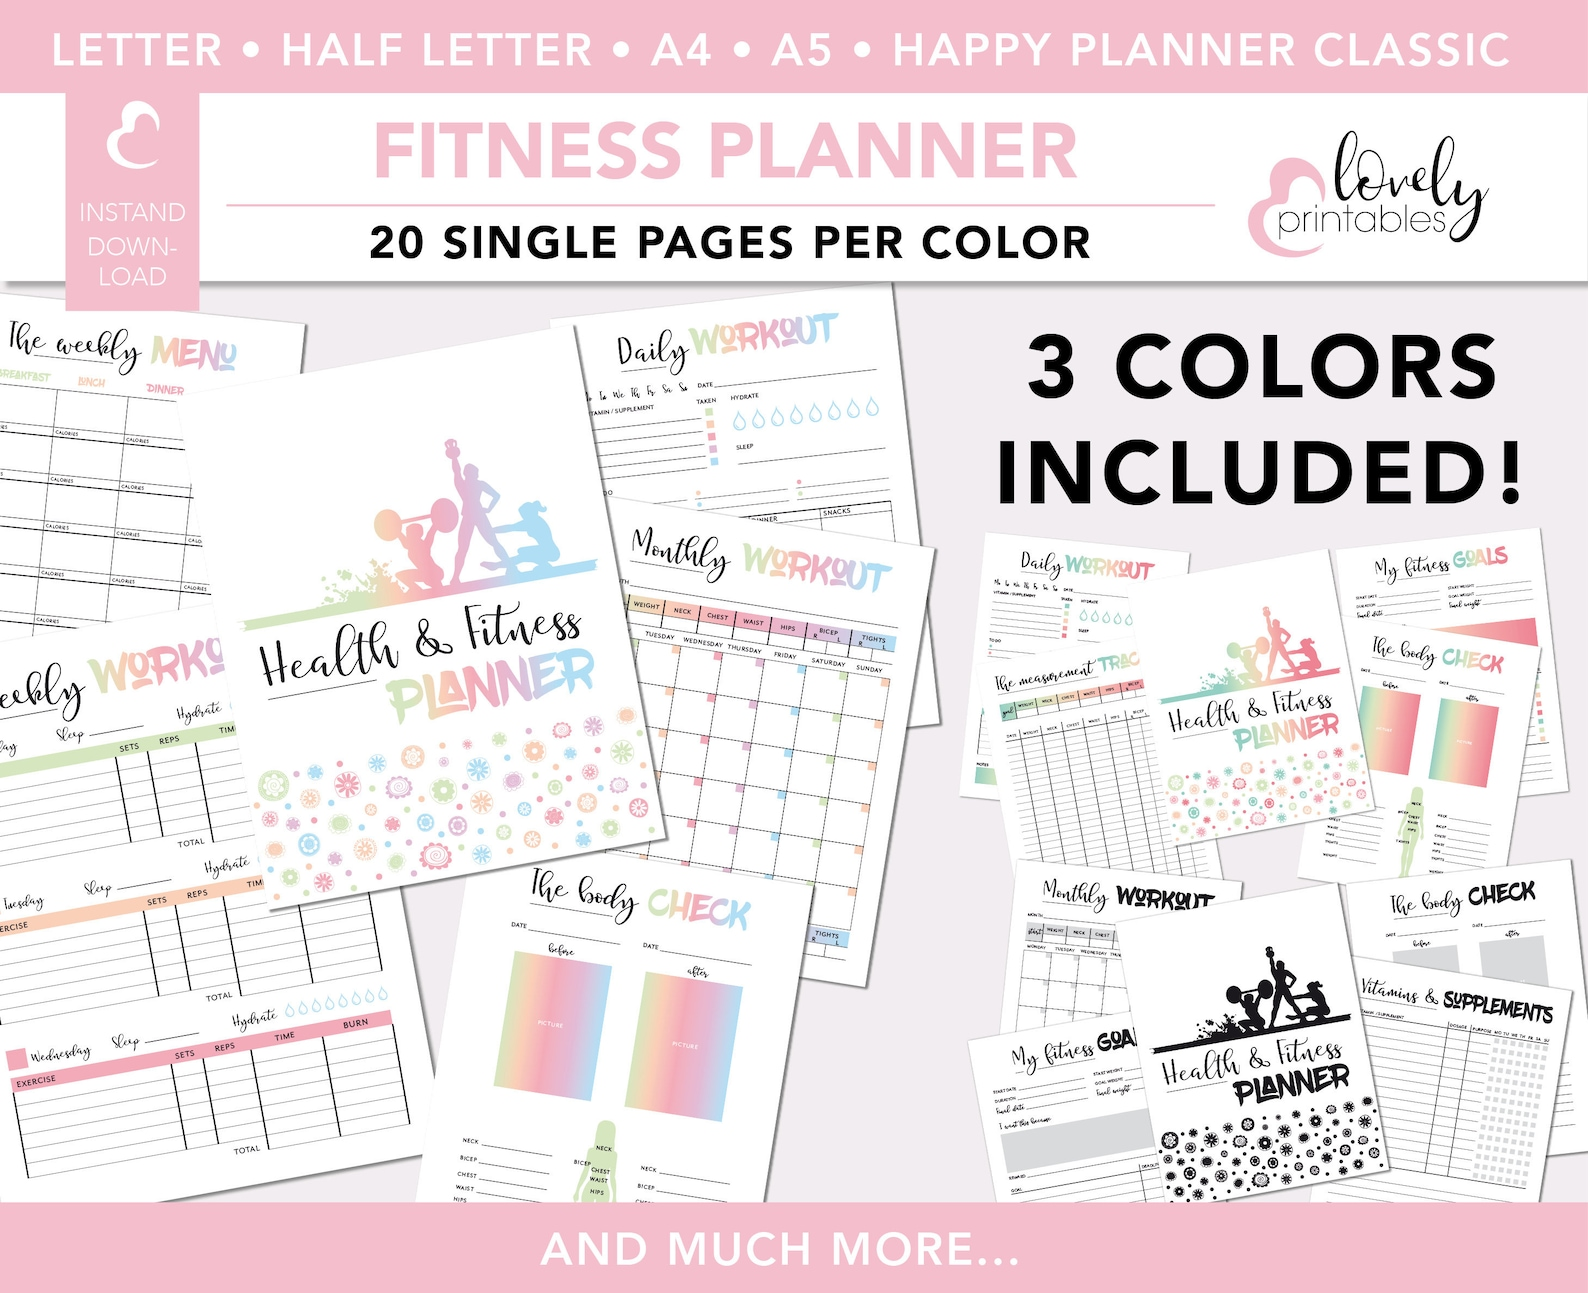 Letter Sized Fitness And Health Planner